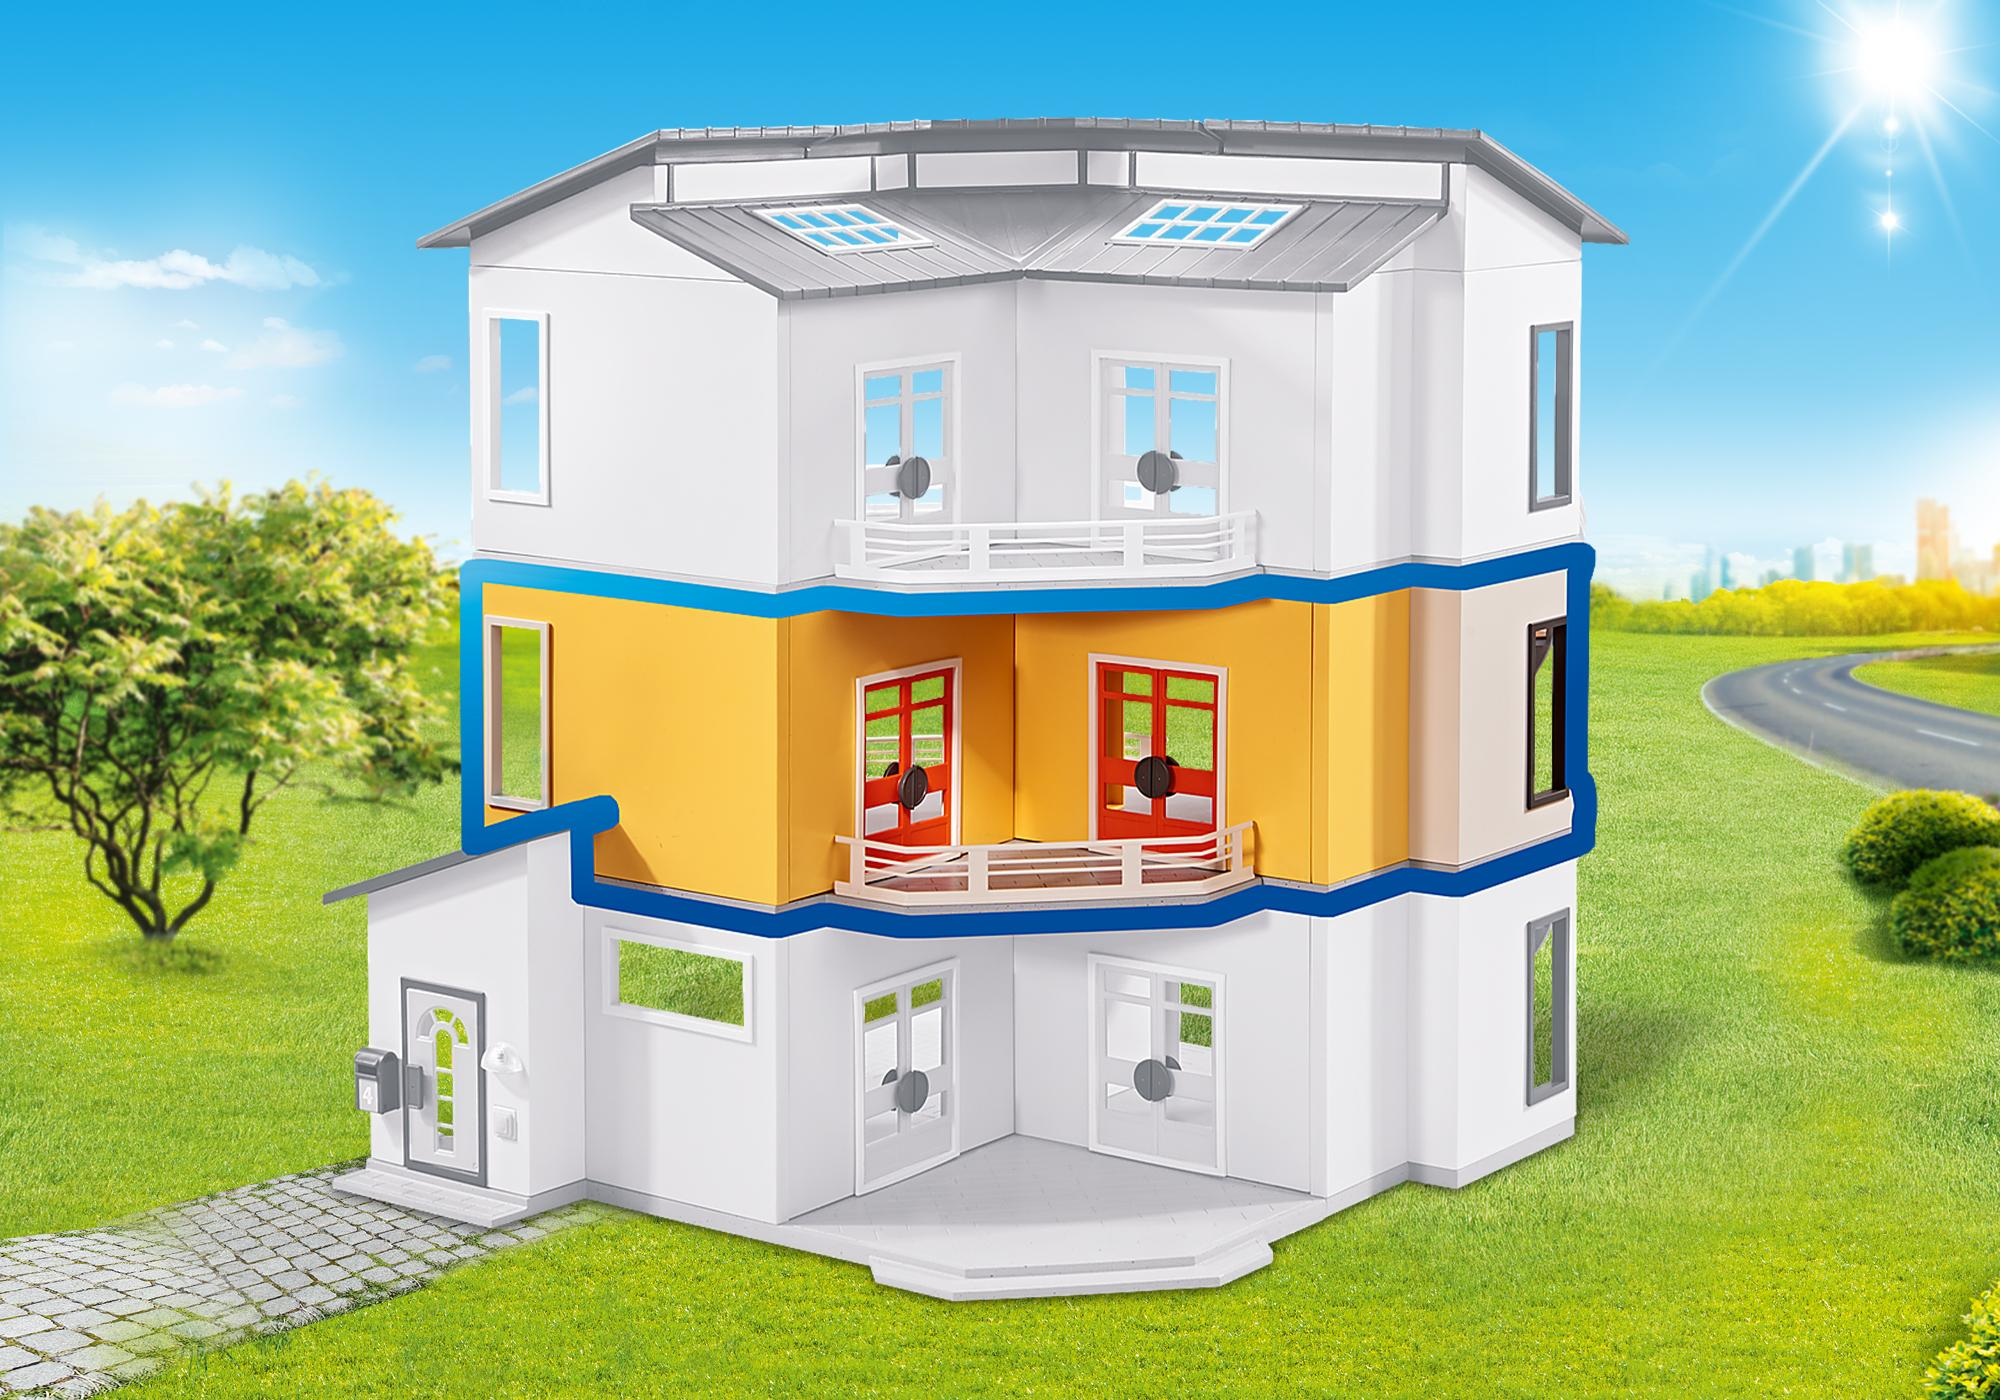 http://media.playmobil.com/i/playmobil/6554_product_detail/Piano Casa estensione